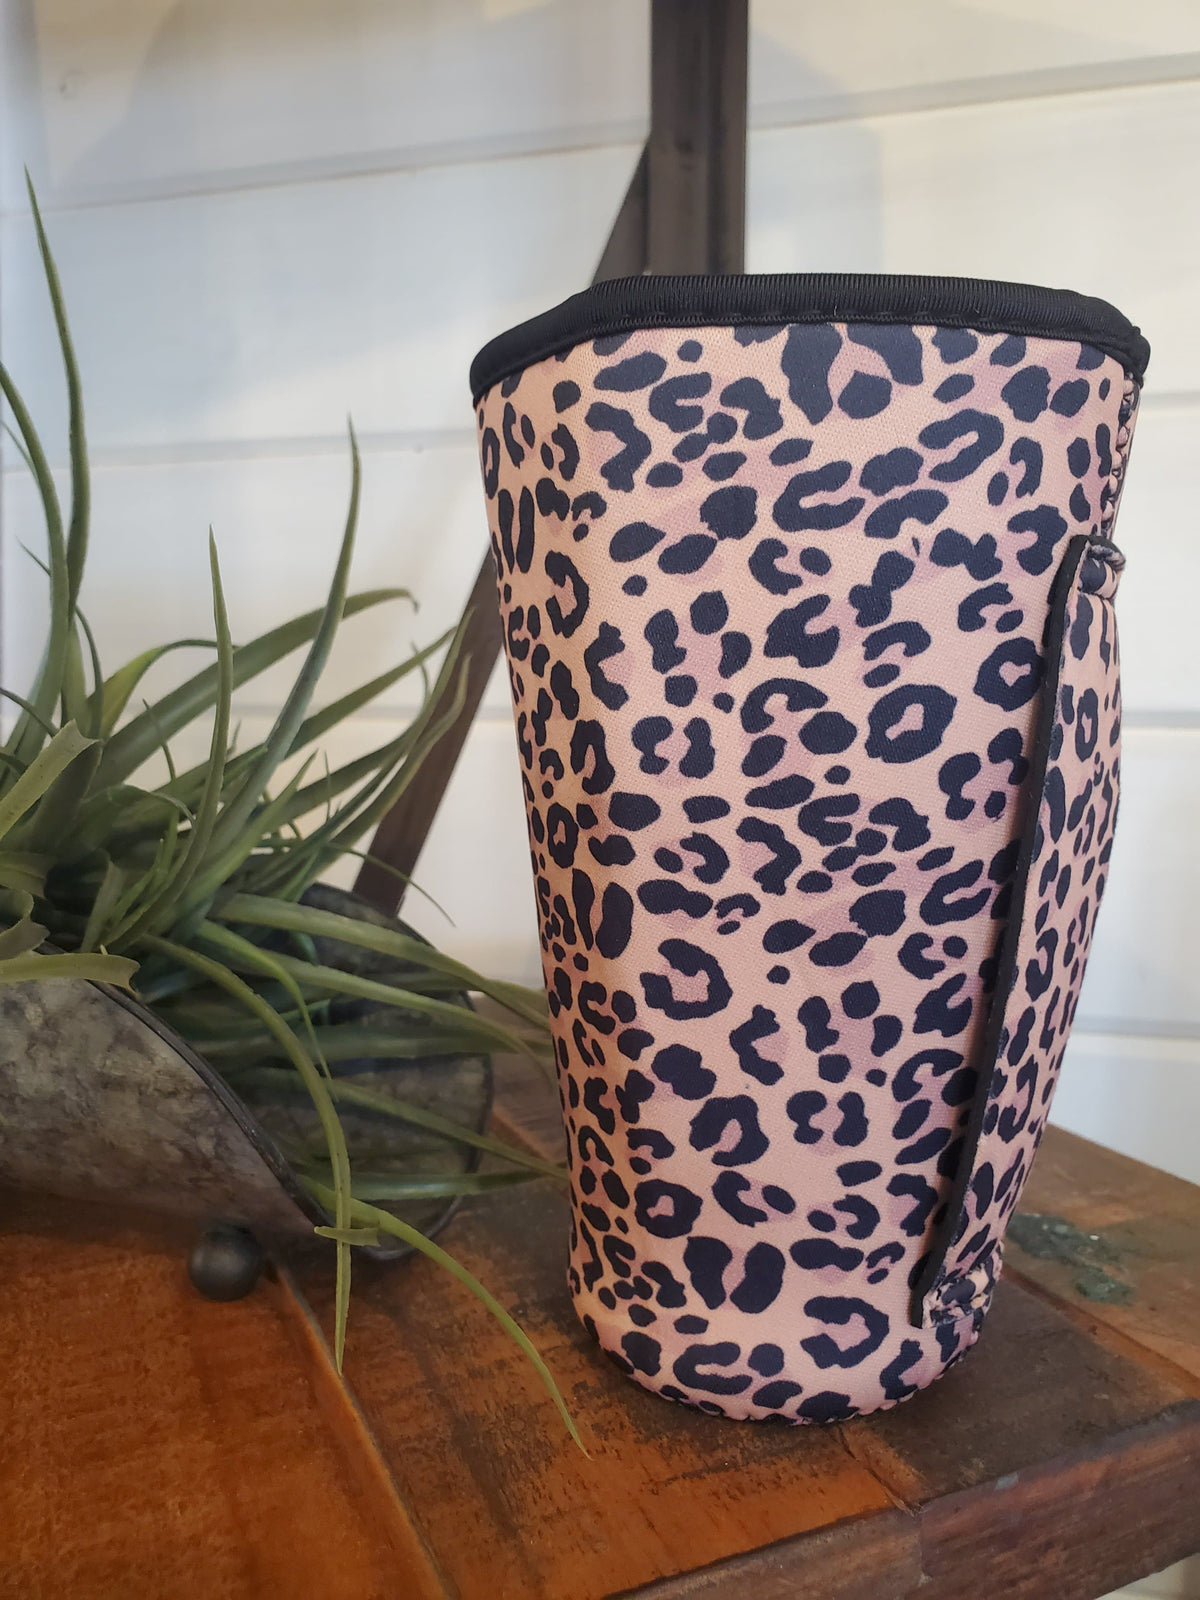 Cozy Cup- Small Leopard